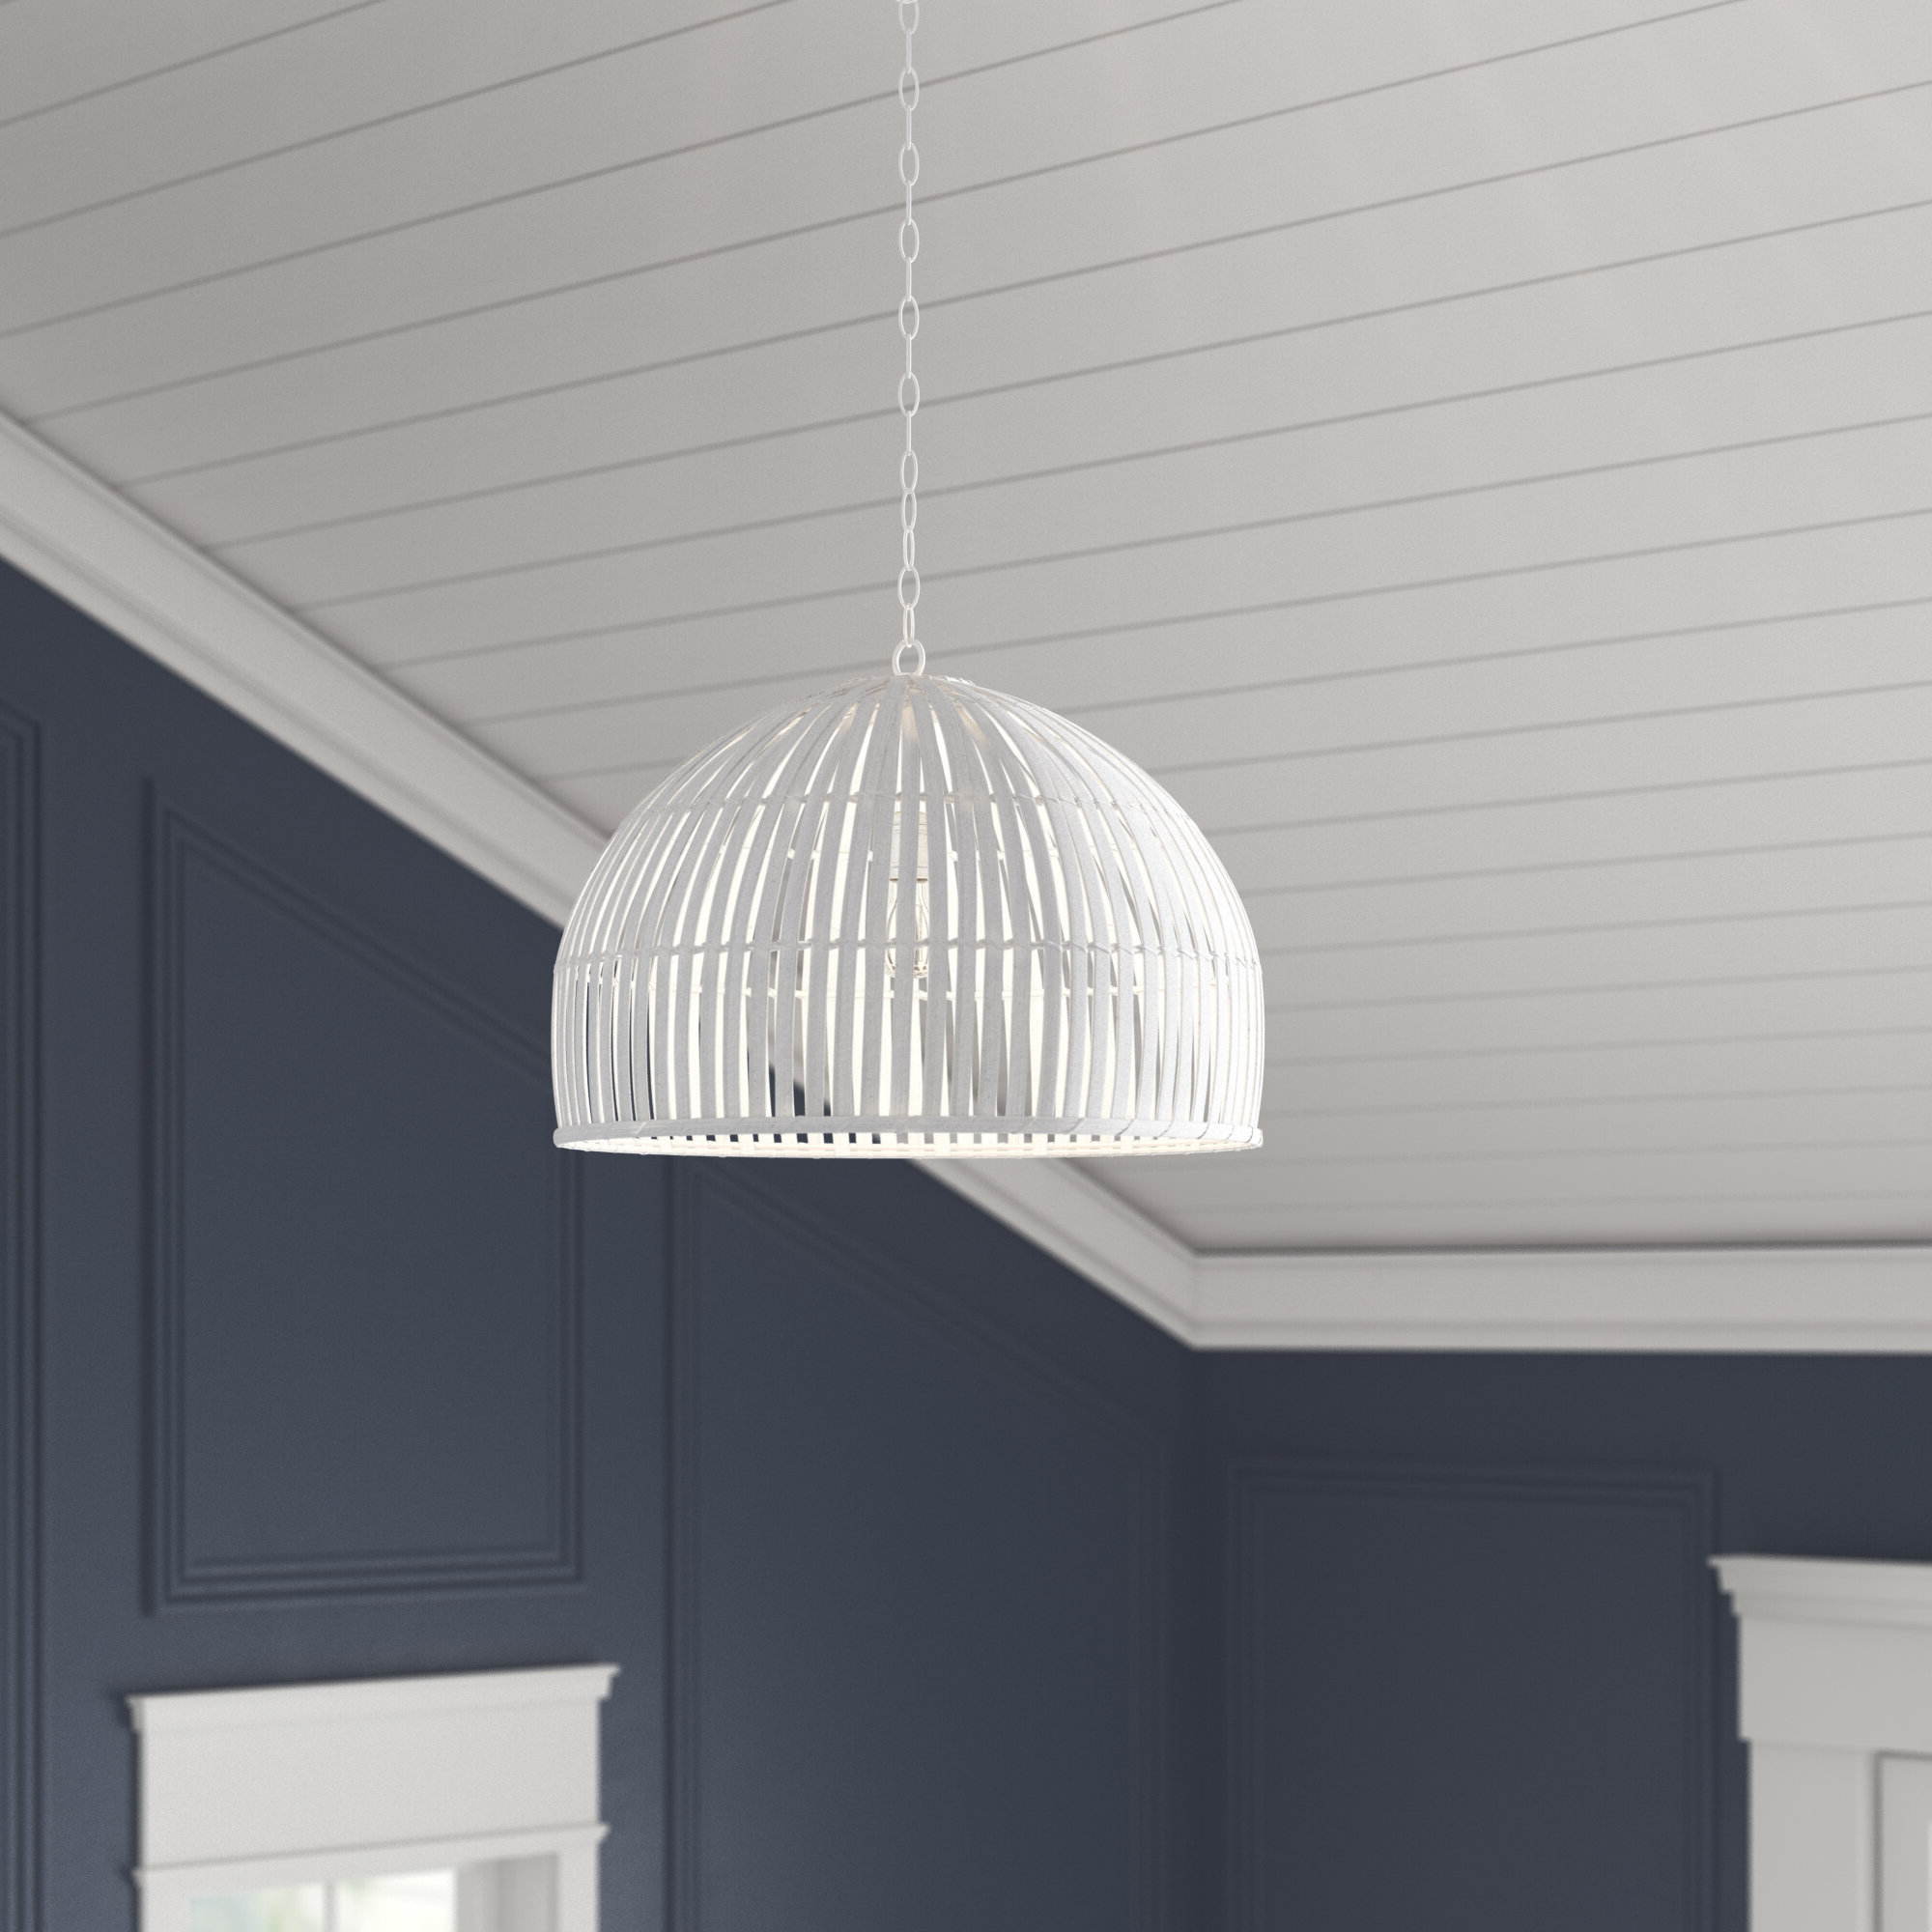 Delmore 1 Light Dome Pendant With Newest Abernathy 1 Light Dome Pendants (View 7 of 25)